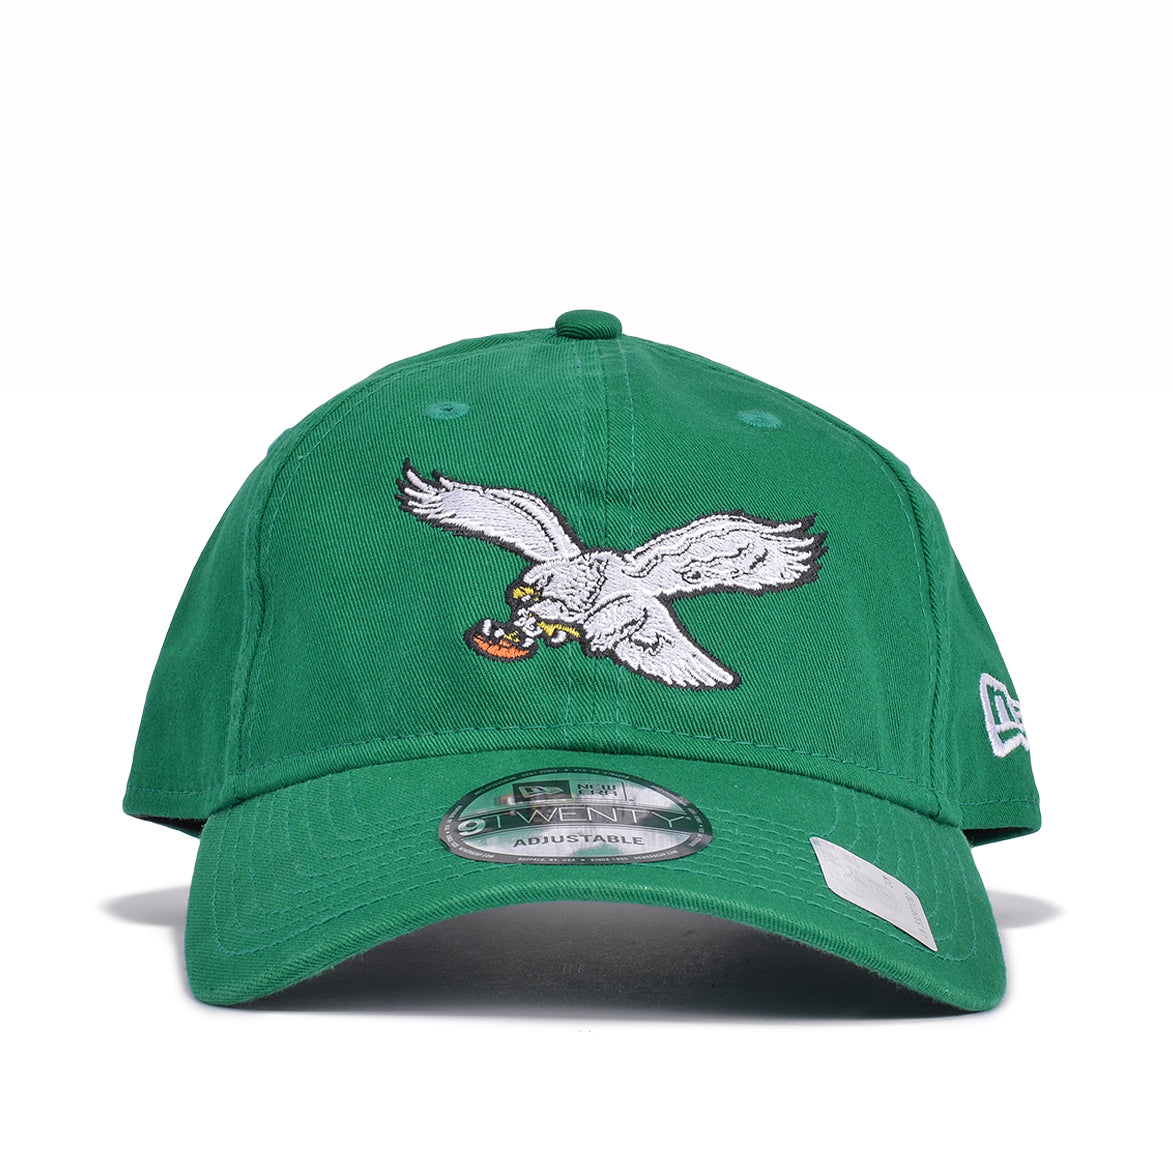 871ba3ebf6c PHILADELPHIA EAGLES THROWBACK DAD HAT - KELLY GREEN